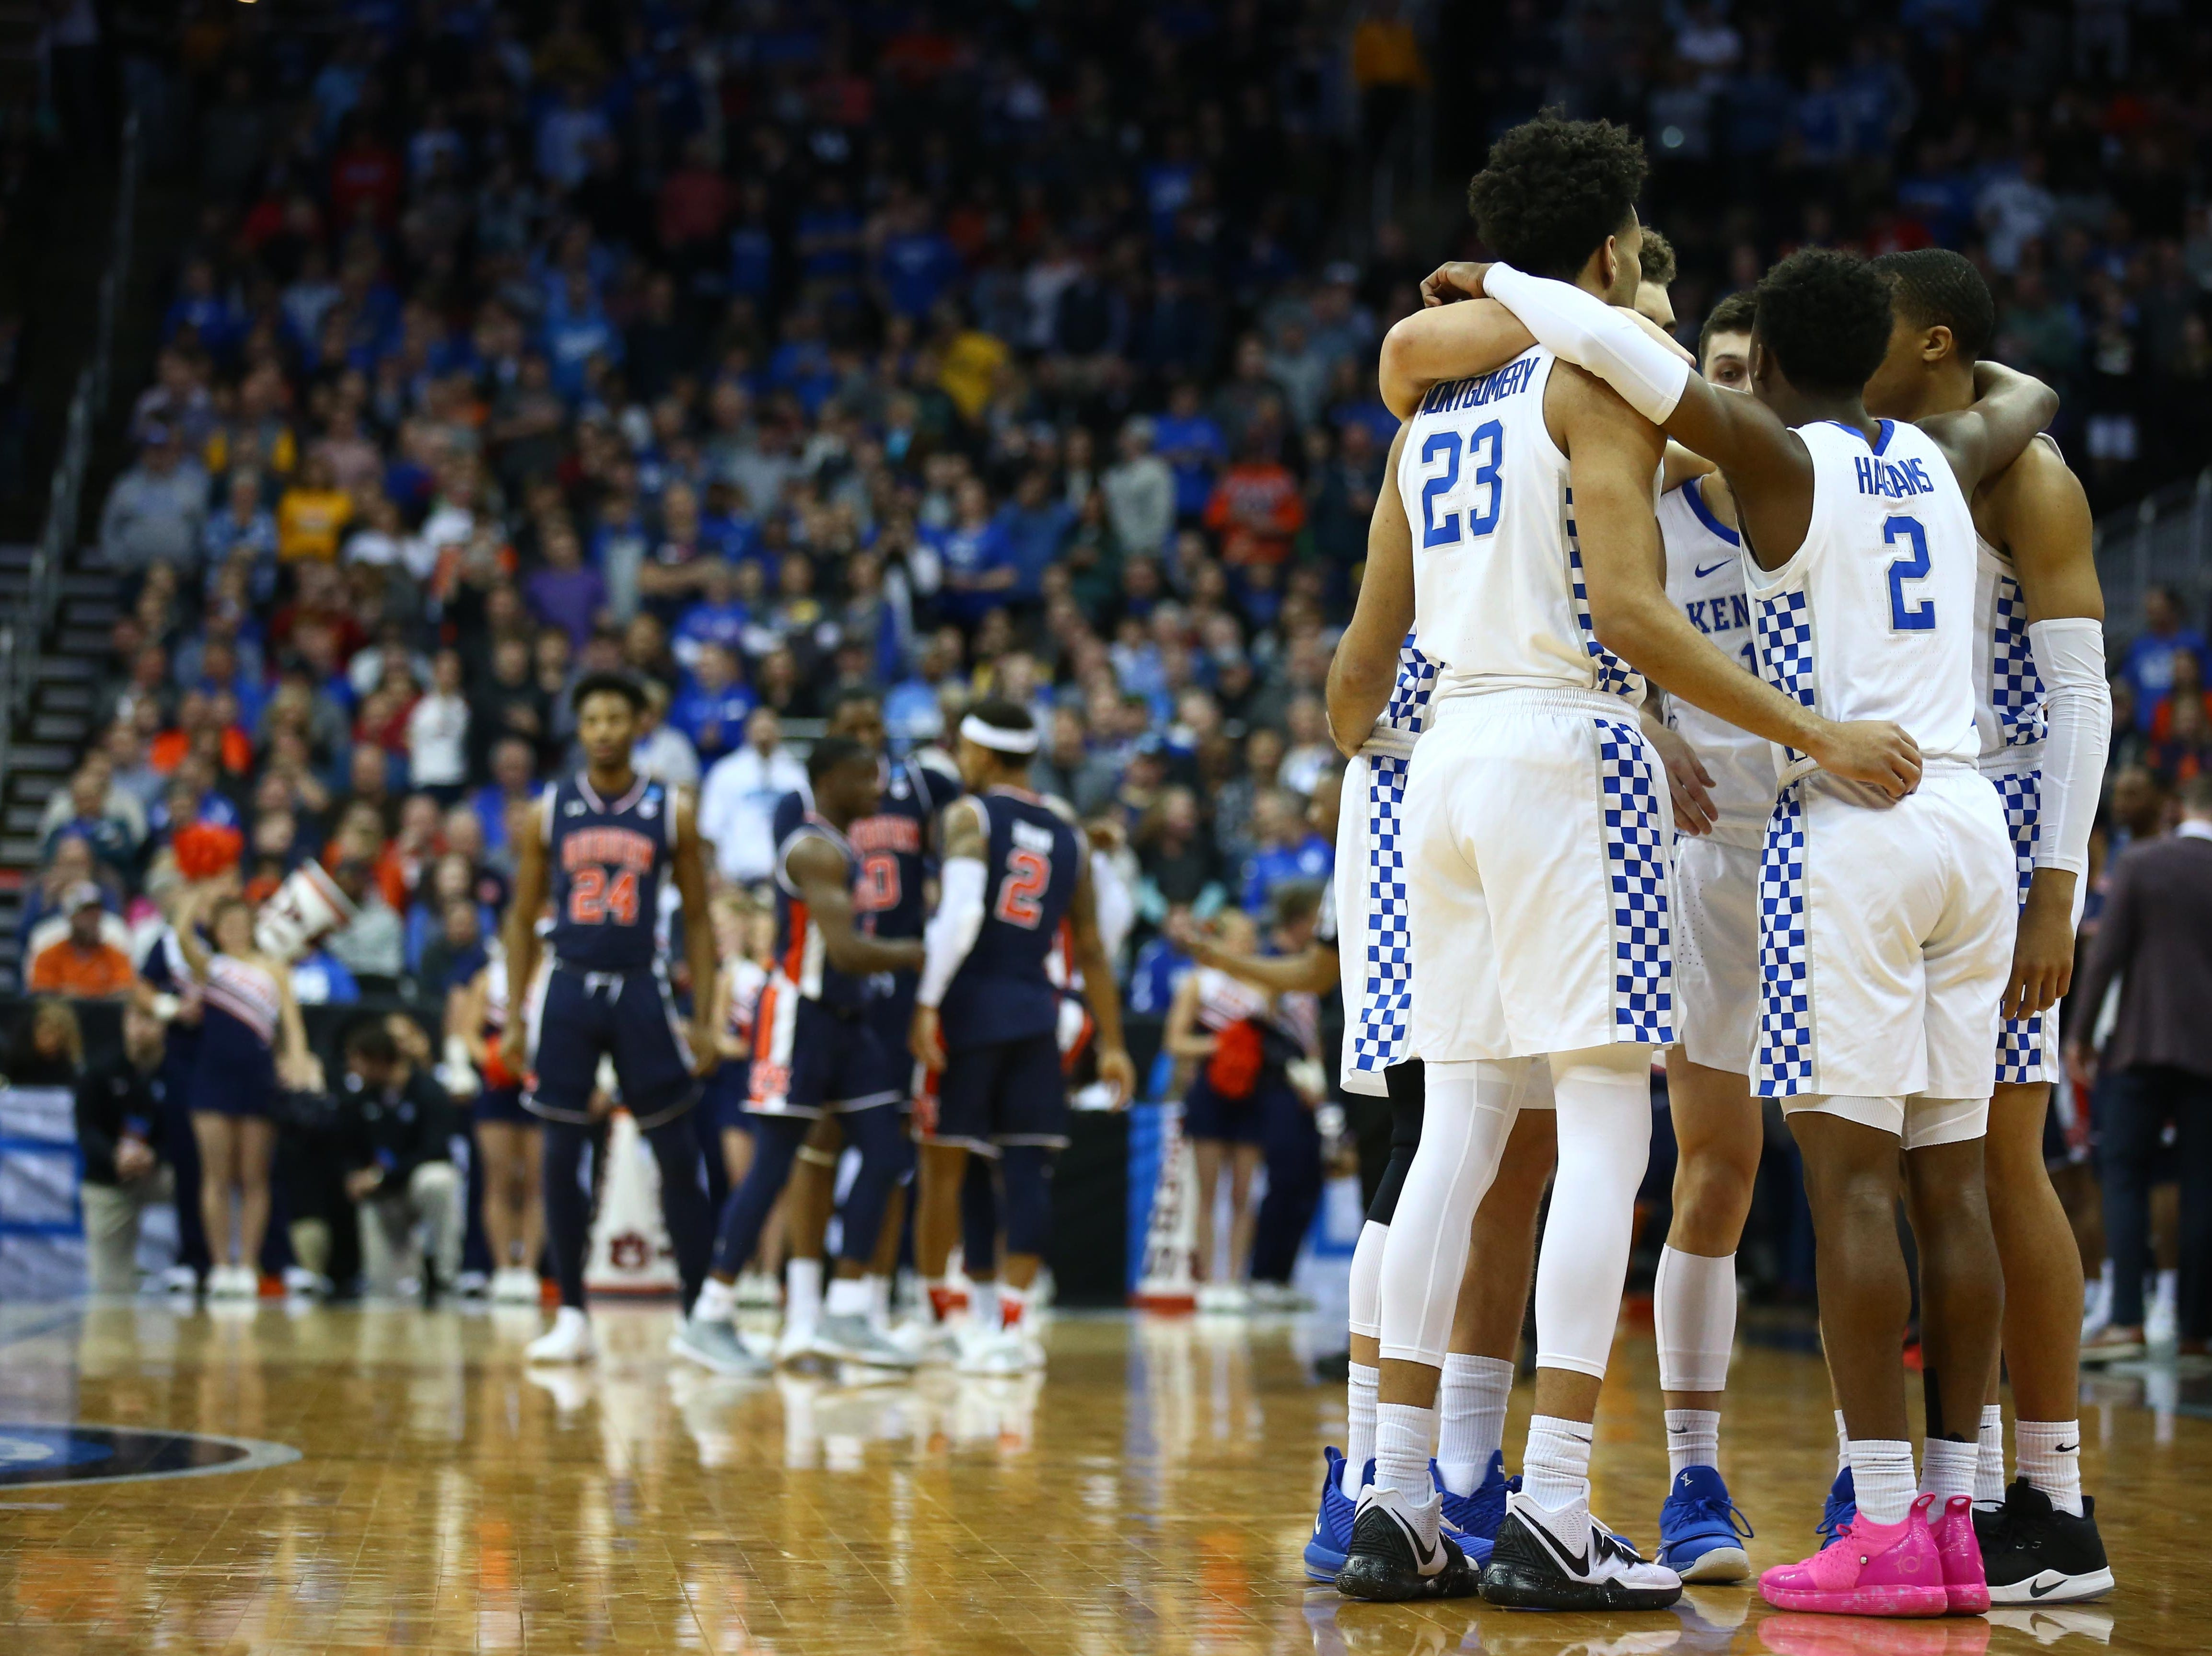 Mar 31, 2019; Kansas City, MO, United States; Kentucky Wildcats players huddle against the Auburn Tigers during the first half in the championship game of the midwest regional of the 2019 NCAA Tournament at Sprint Center. Mandatory Credit: Jay Biggerstaff-USA TODAY Sports